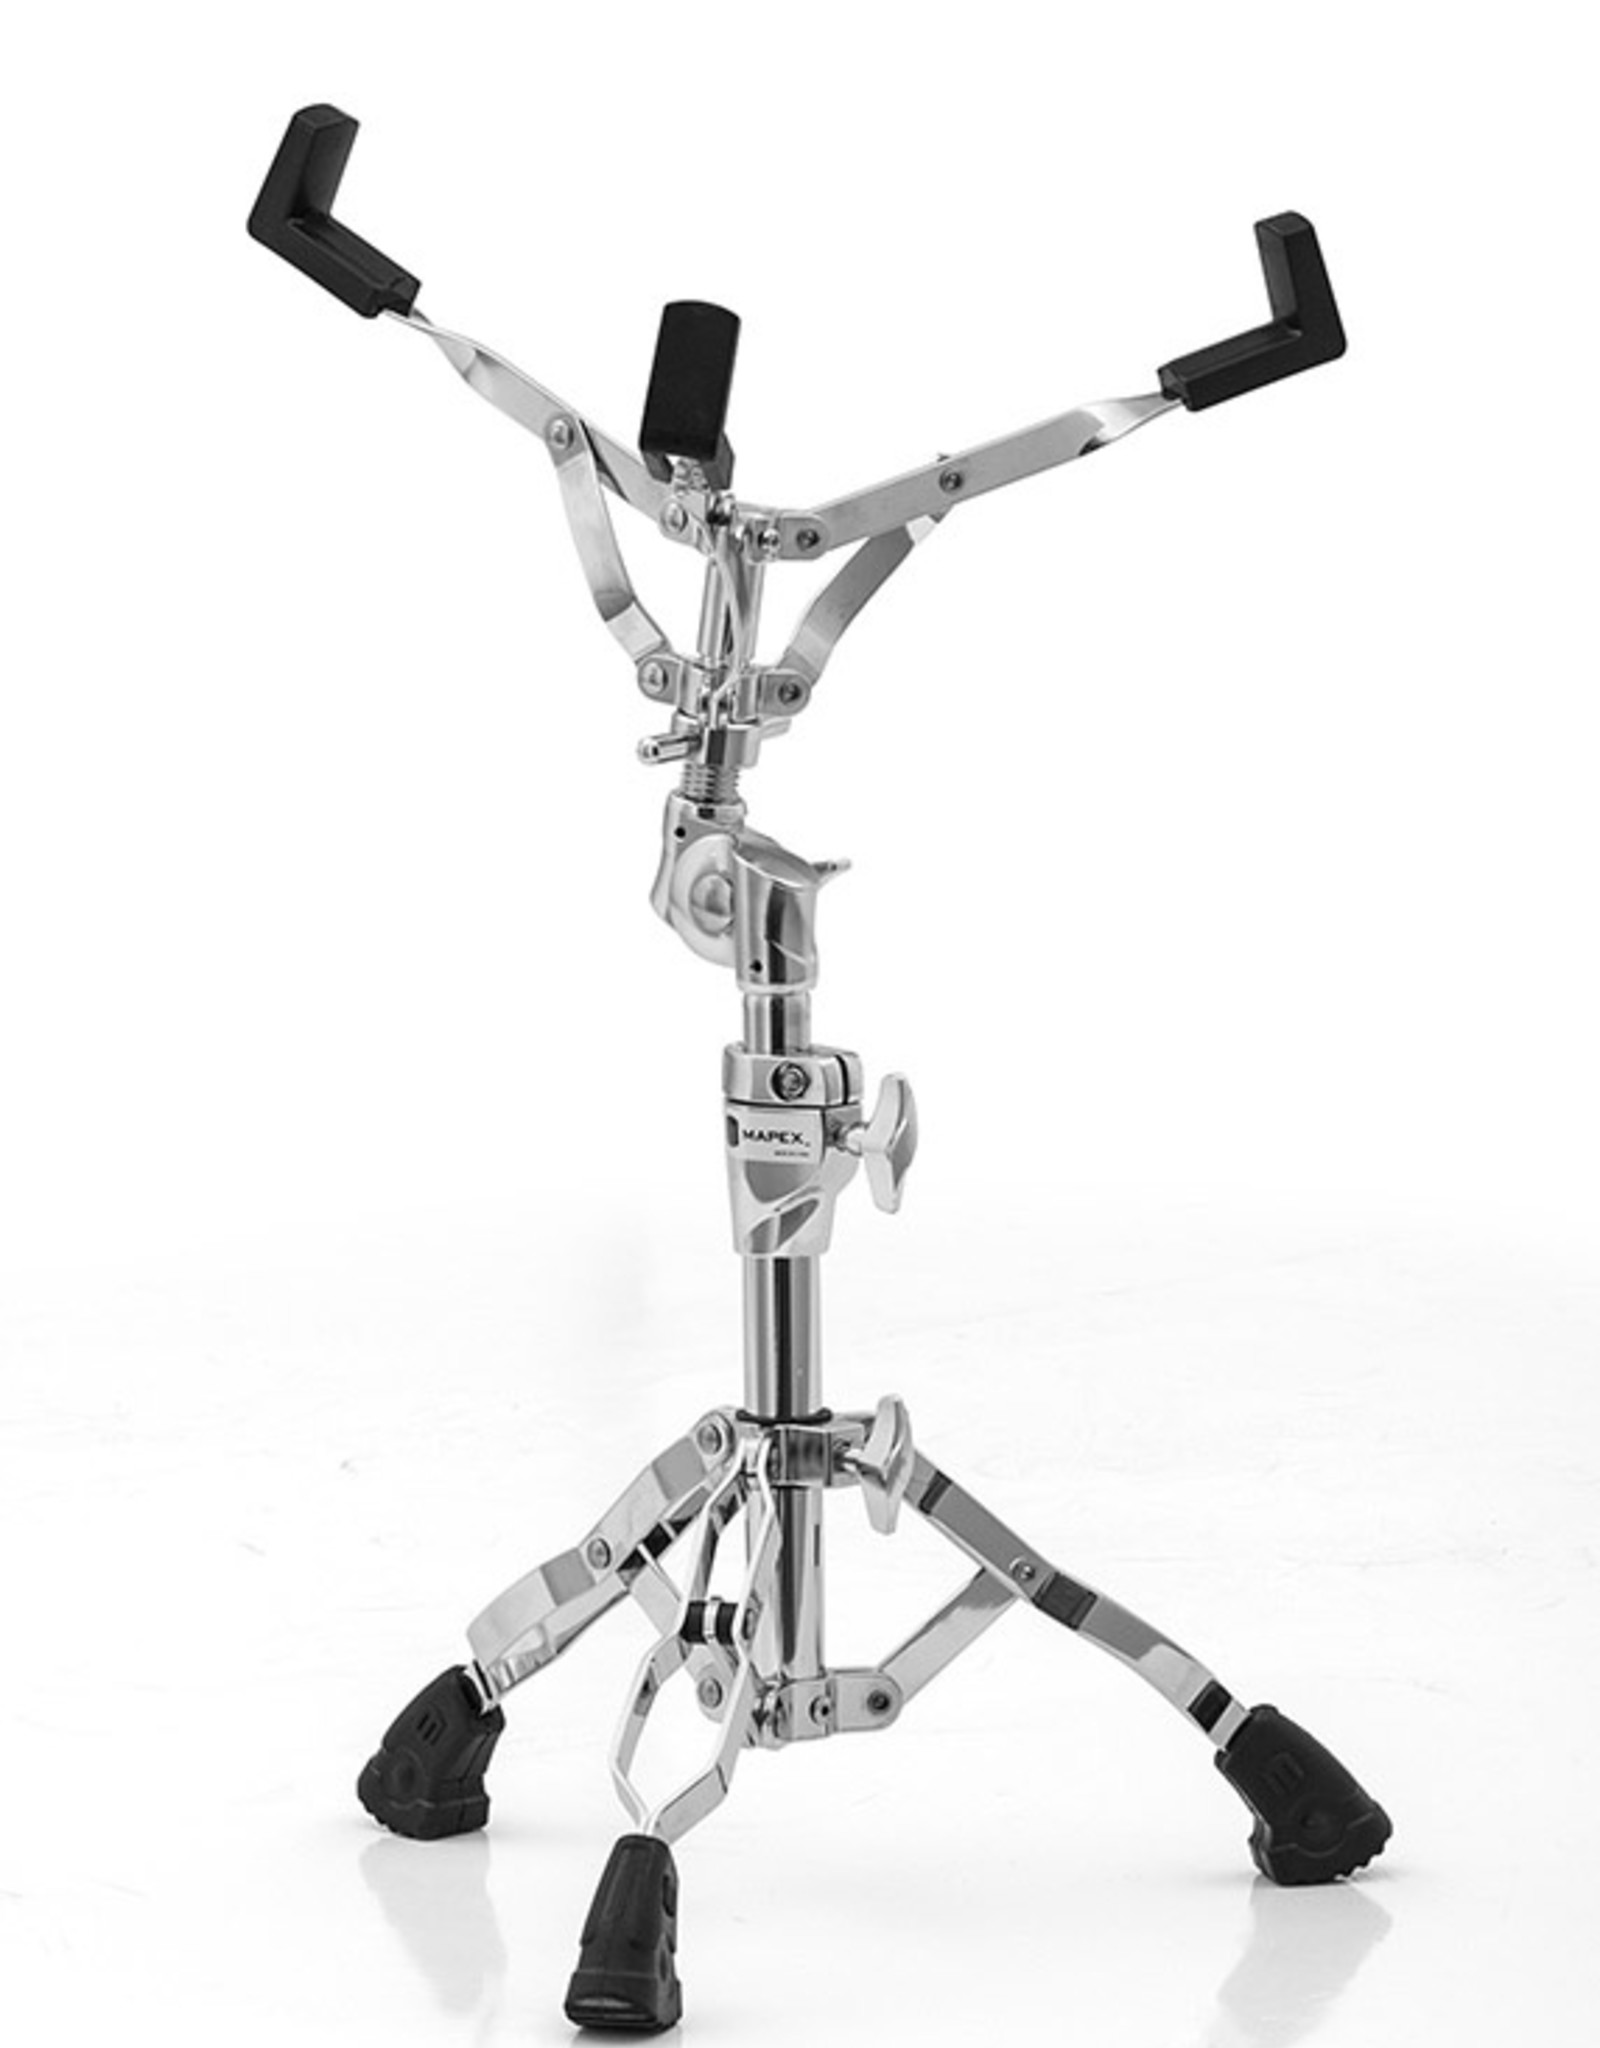 Mapex Mars Double Braced Ratchet Adjuster Snare Stand - Chrome